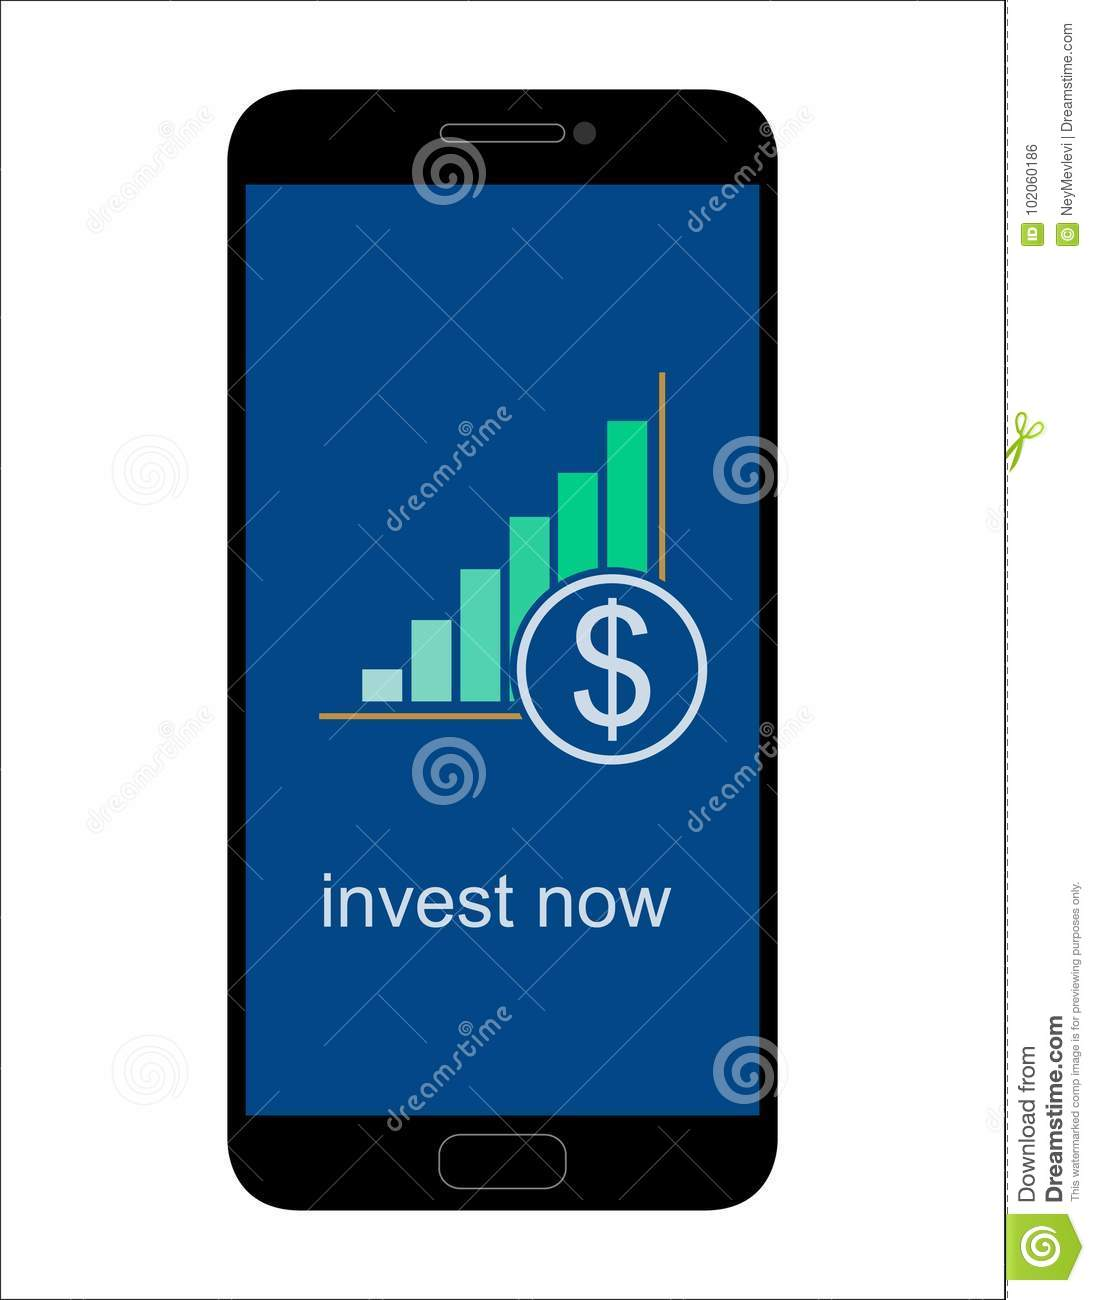 Investing easily ex norwich managers investment